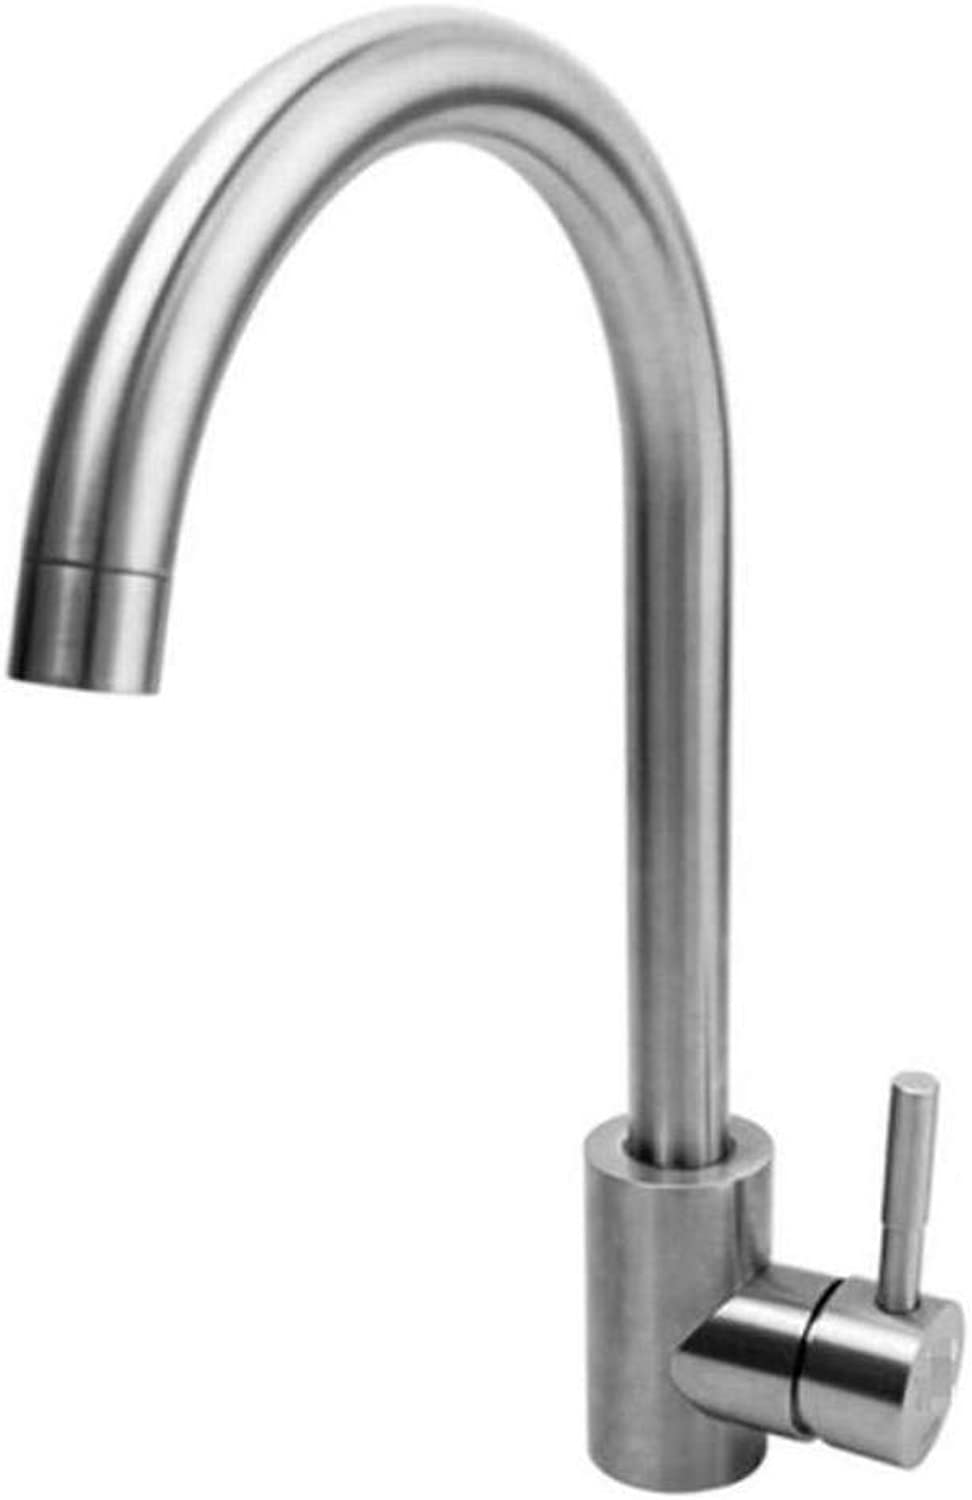 Taps Kitchen Sinktaps Mixer Swivel Faucet Sink Kitchen Sink Faucet Dishwash Basin